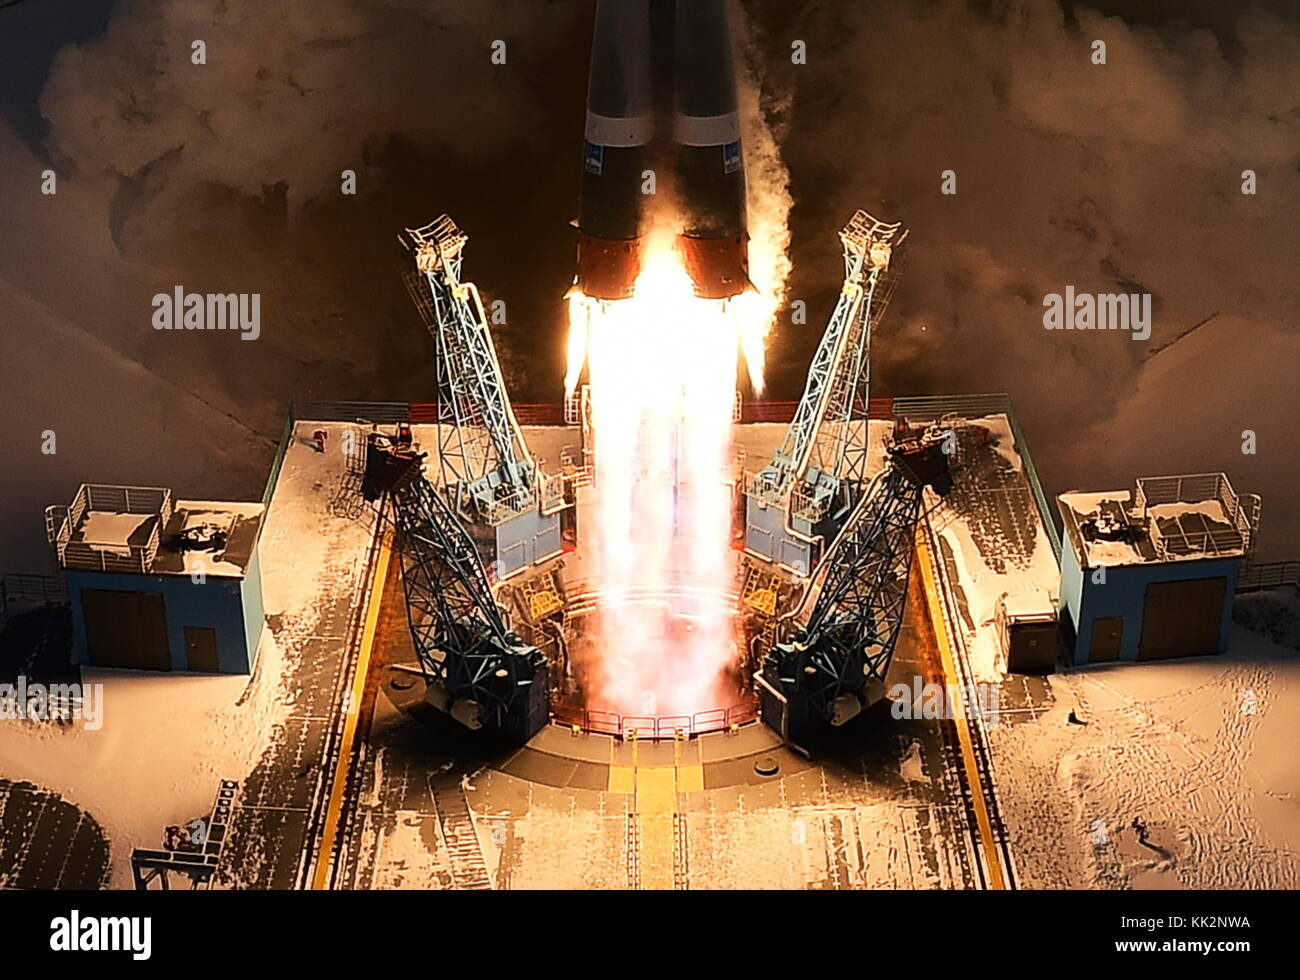 Amur Region, Russia. 28th Nov, 2017. A Soyuz 2.1b rocket booster with a Frigate upper stage block, the Meteor-M - Stock Image